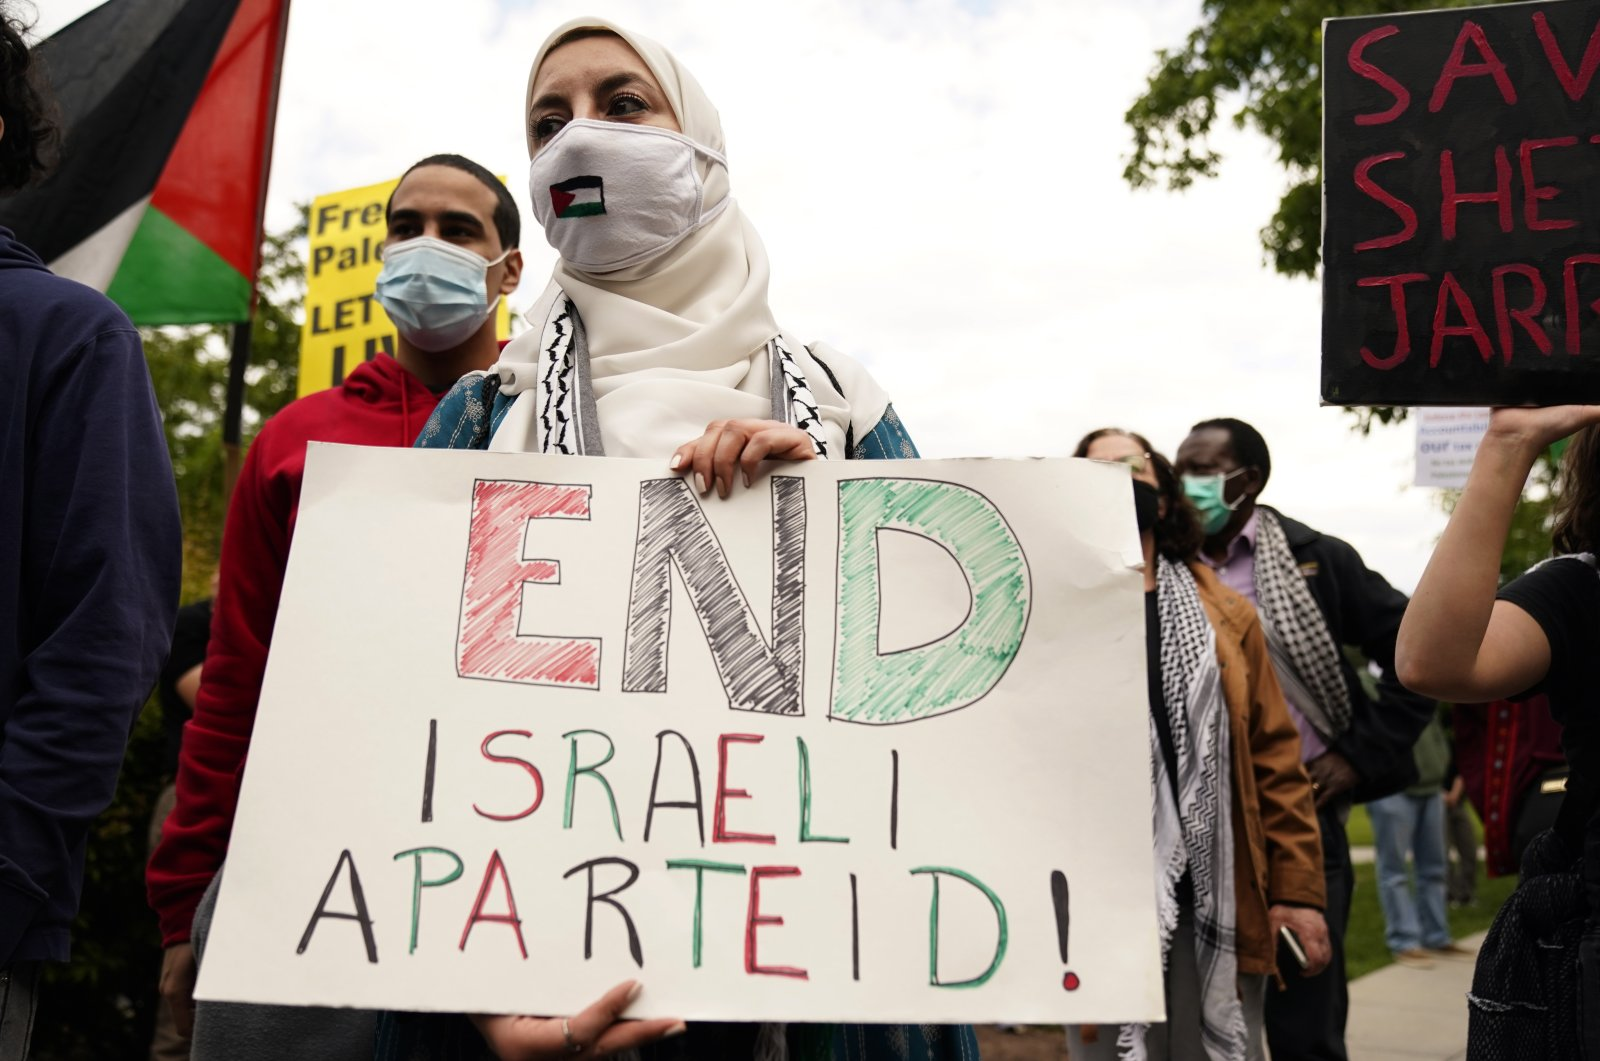 Pro-Palestine protesters take part in a demonstration outside the US State Department in Washington, DC, USA, 11 May 2021. (EPA Photo)